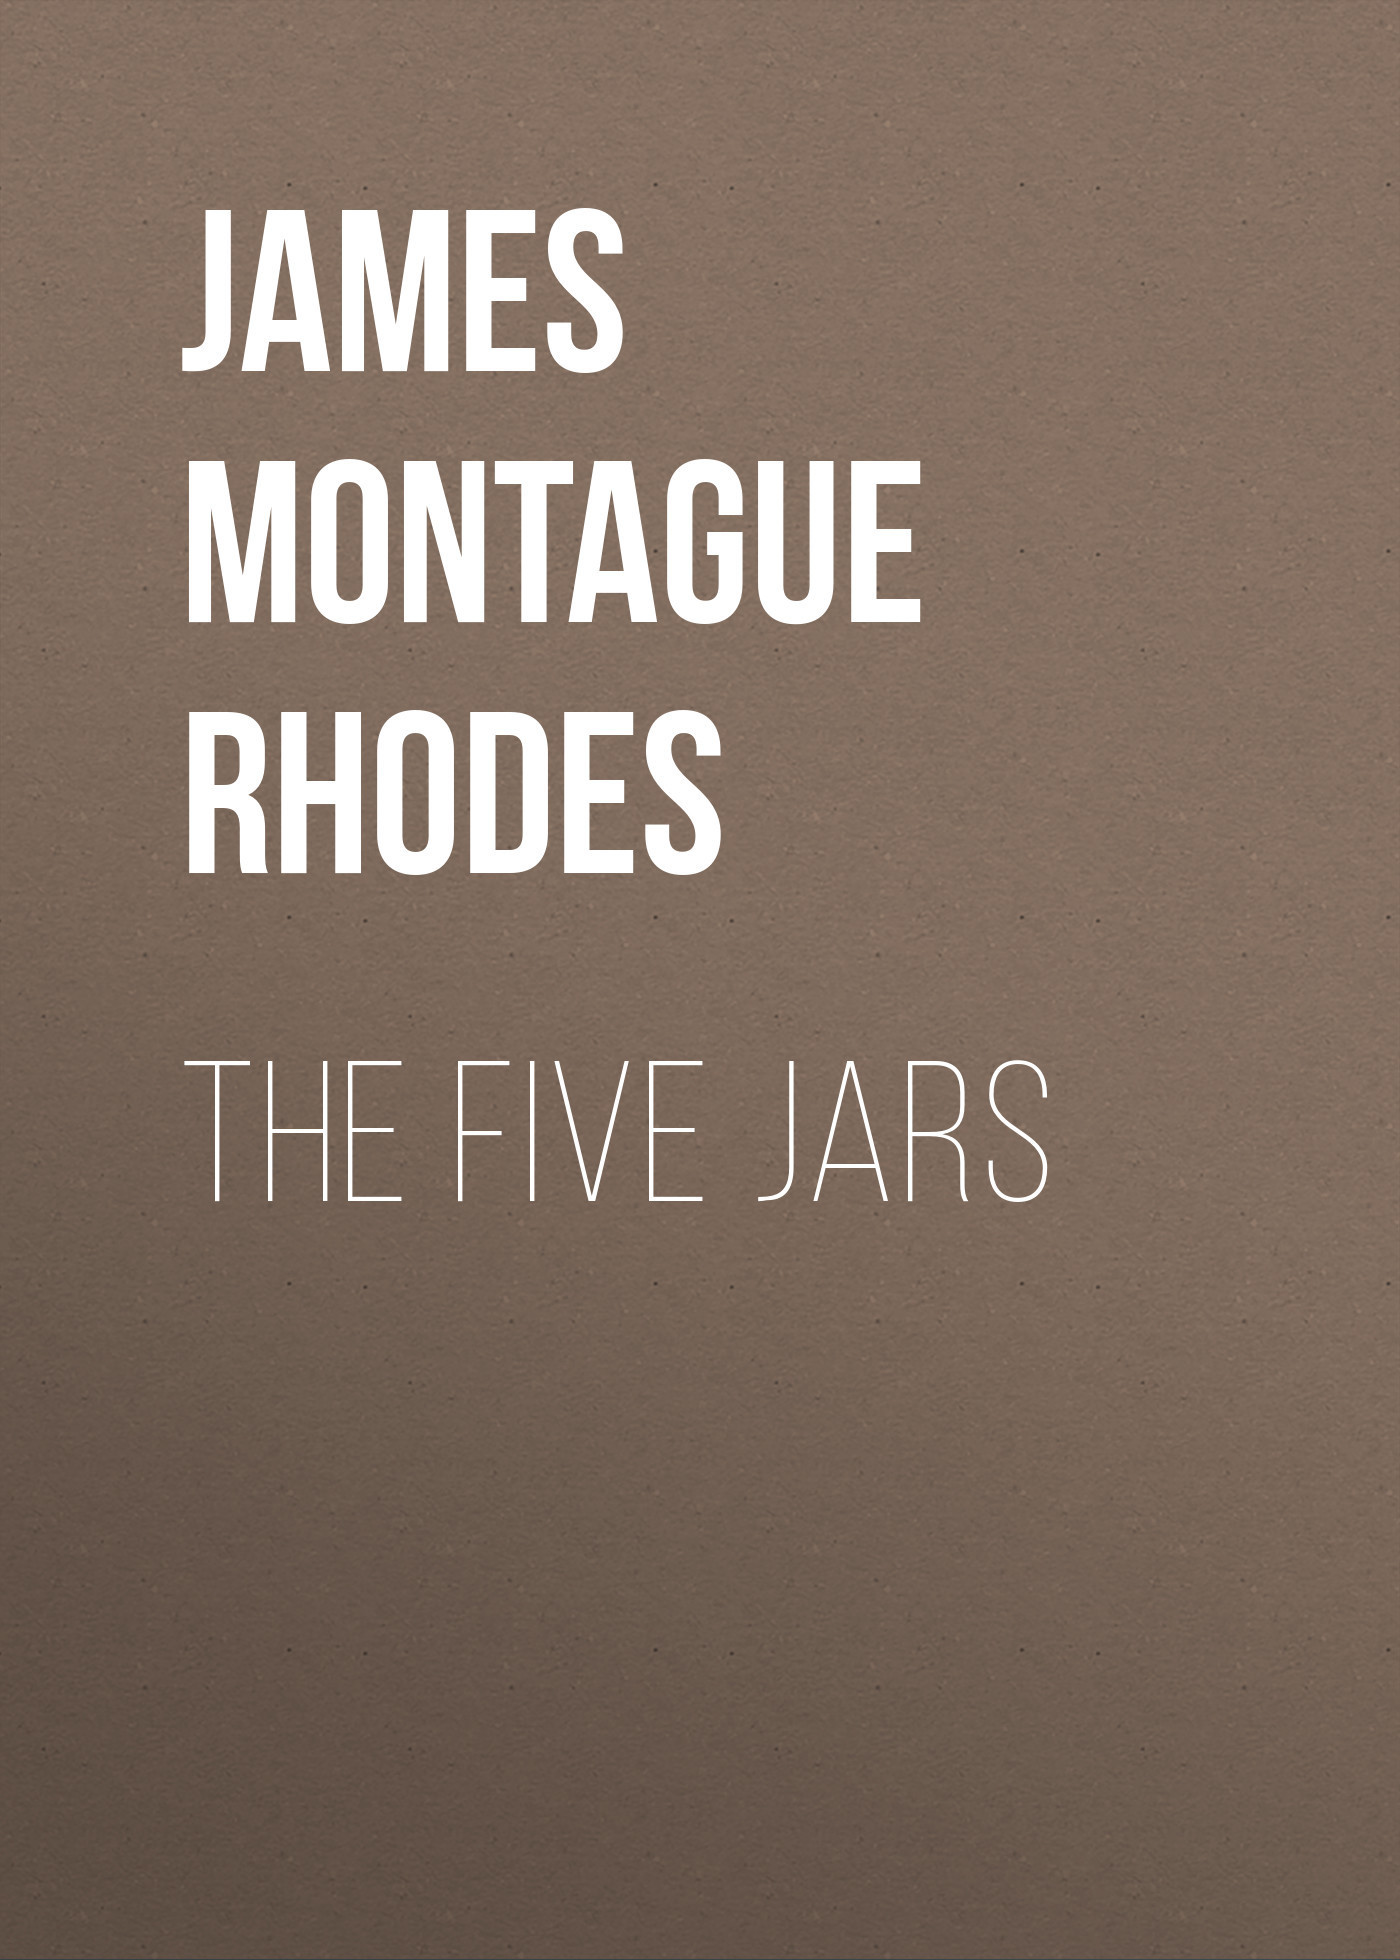 James Montague Rhodes The Five Jars